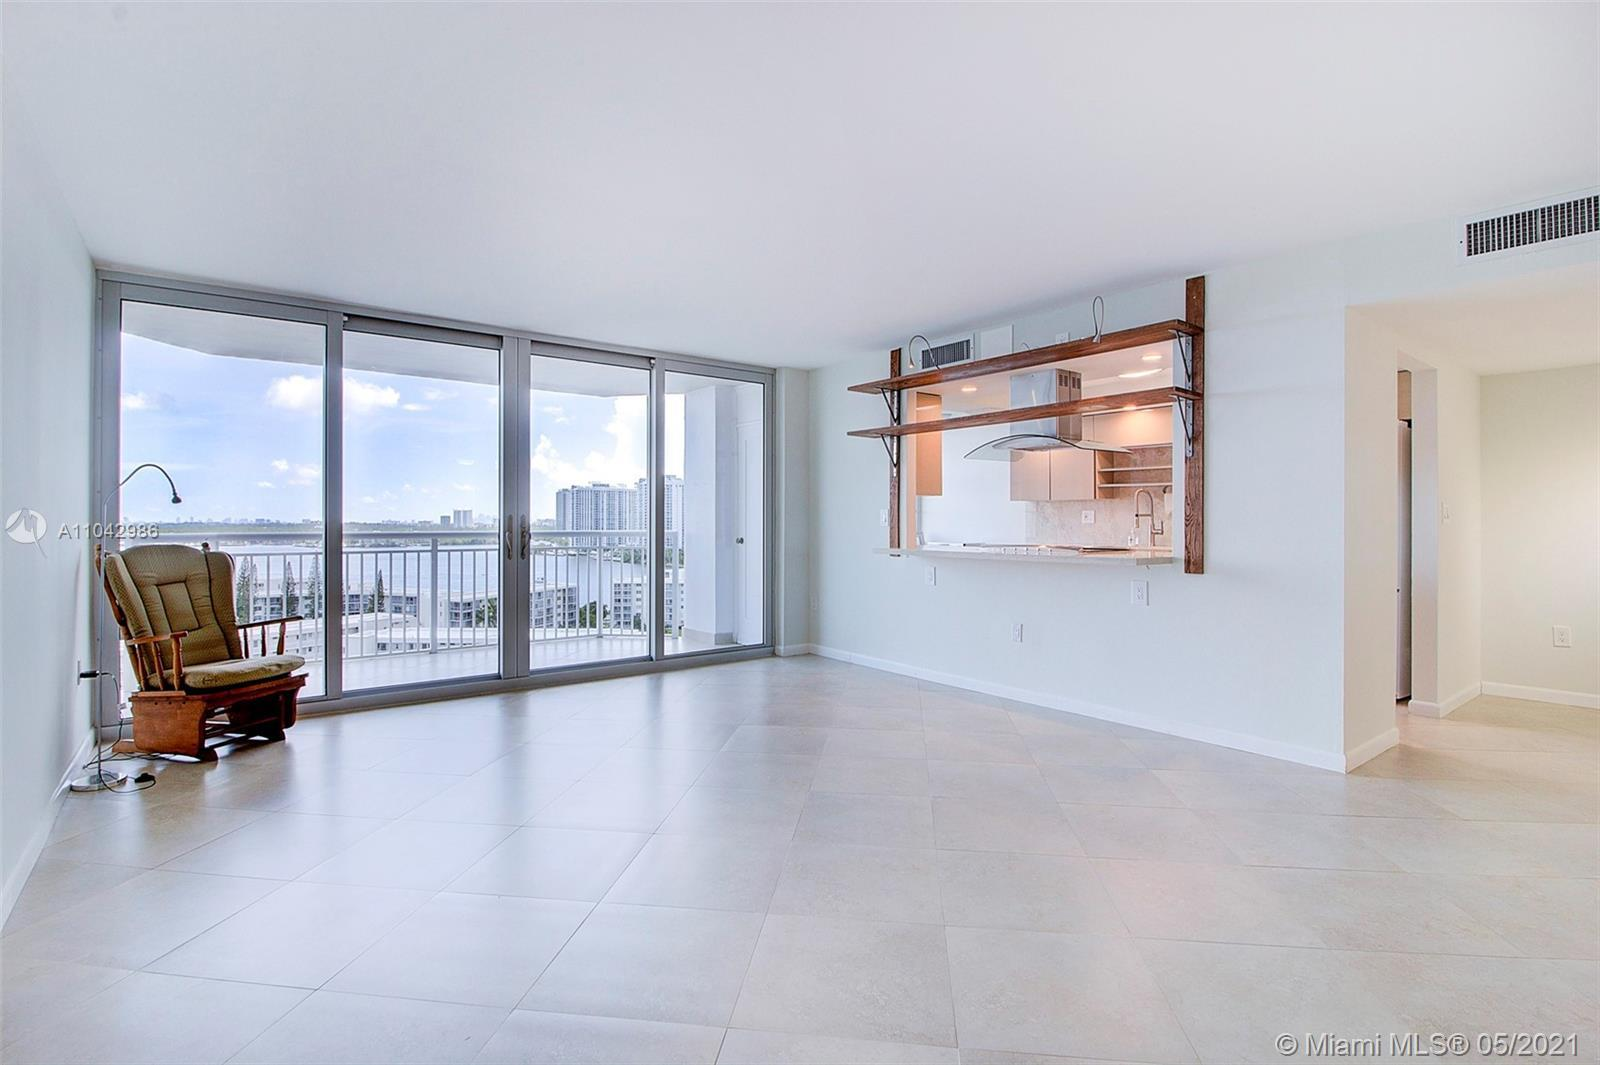 AMAZING LOCATION, totally luxuriously upgraded, huge apartment with double balcony, west and east ex